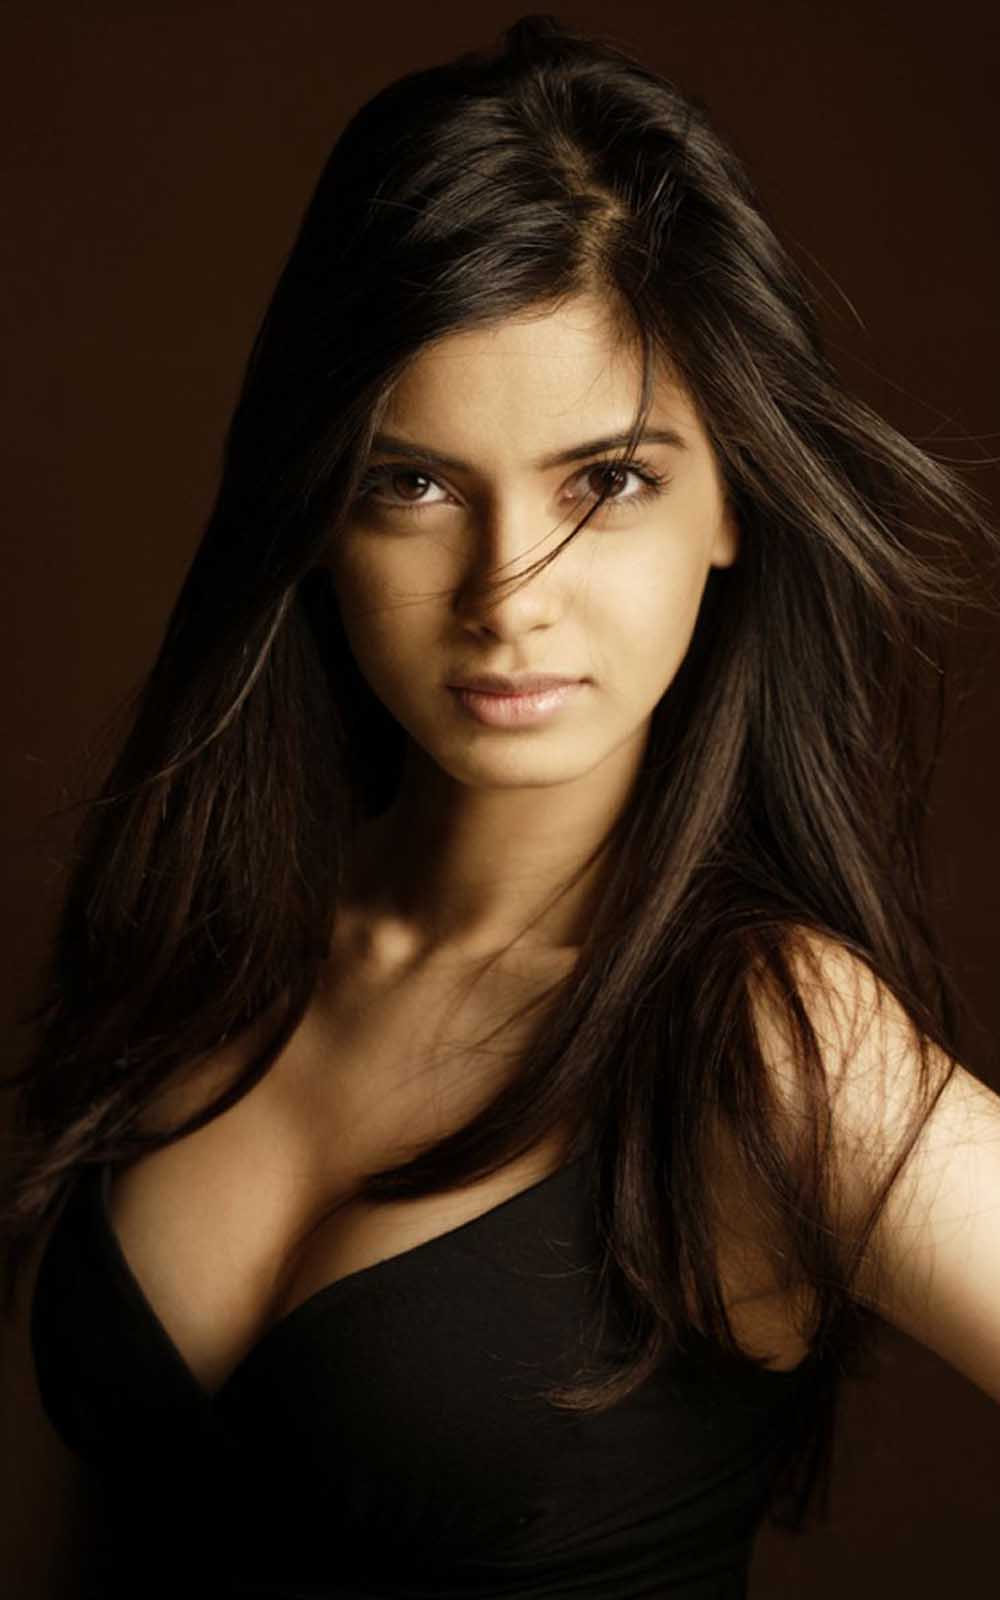 Diana Penty Hd Wallpapers High Definition Free